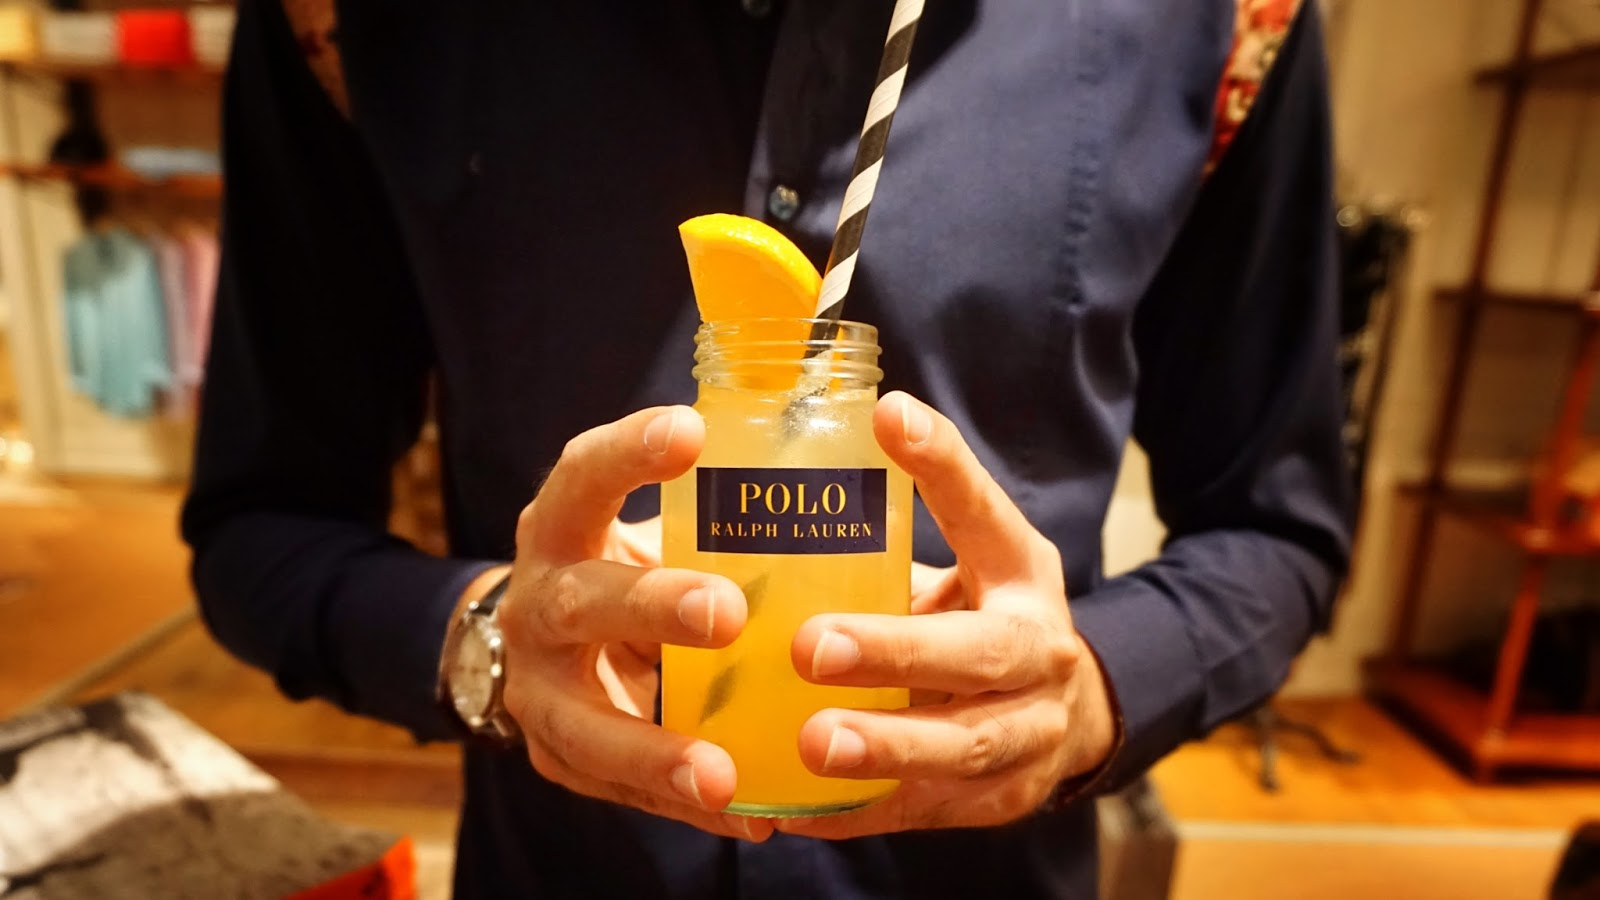 polo ralph lauren shoes singapore sling drink ingredients